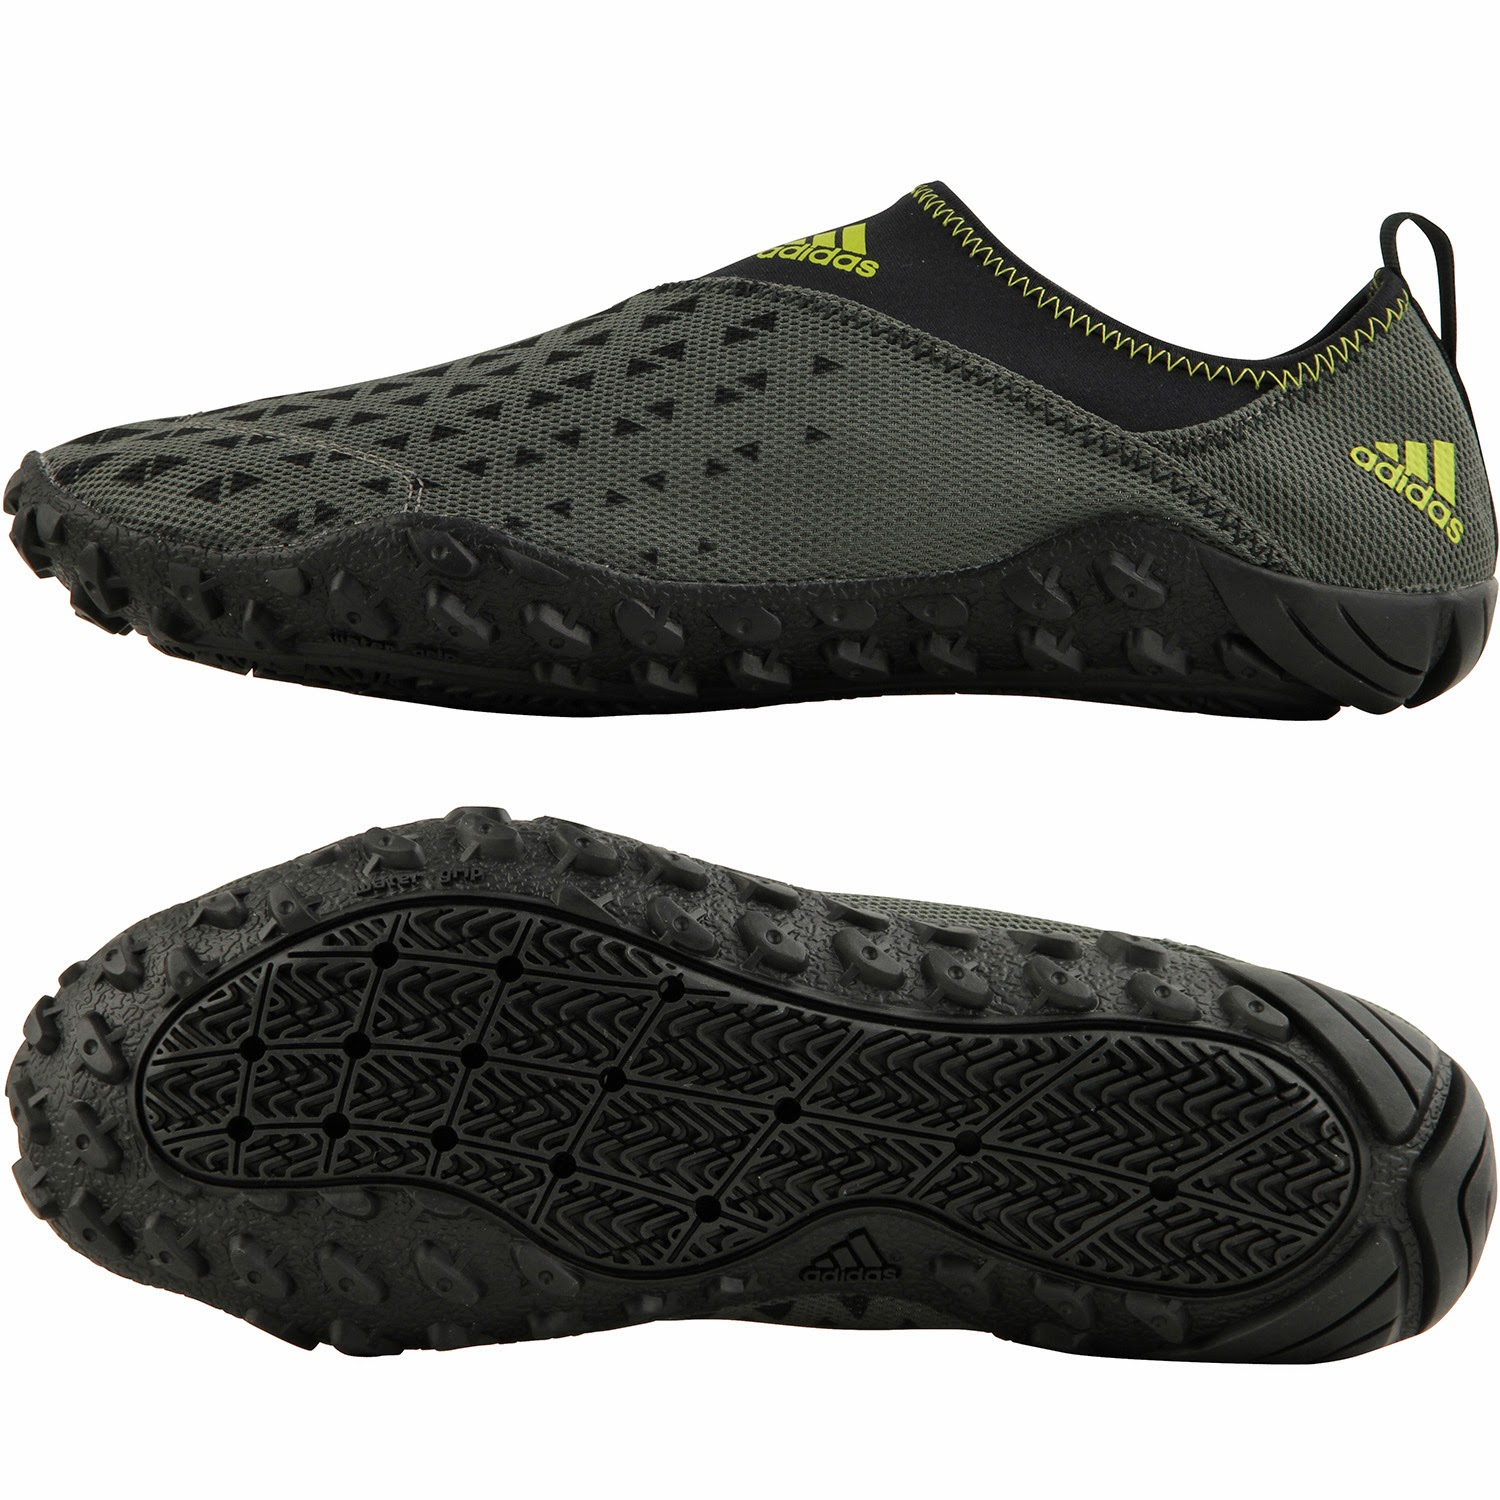 Professional Atheletic News: Adidas KUROBE II Men's Water Sports Shoes